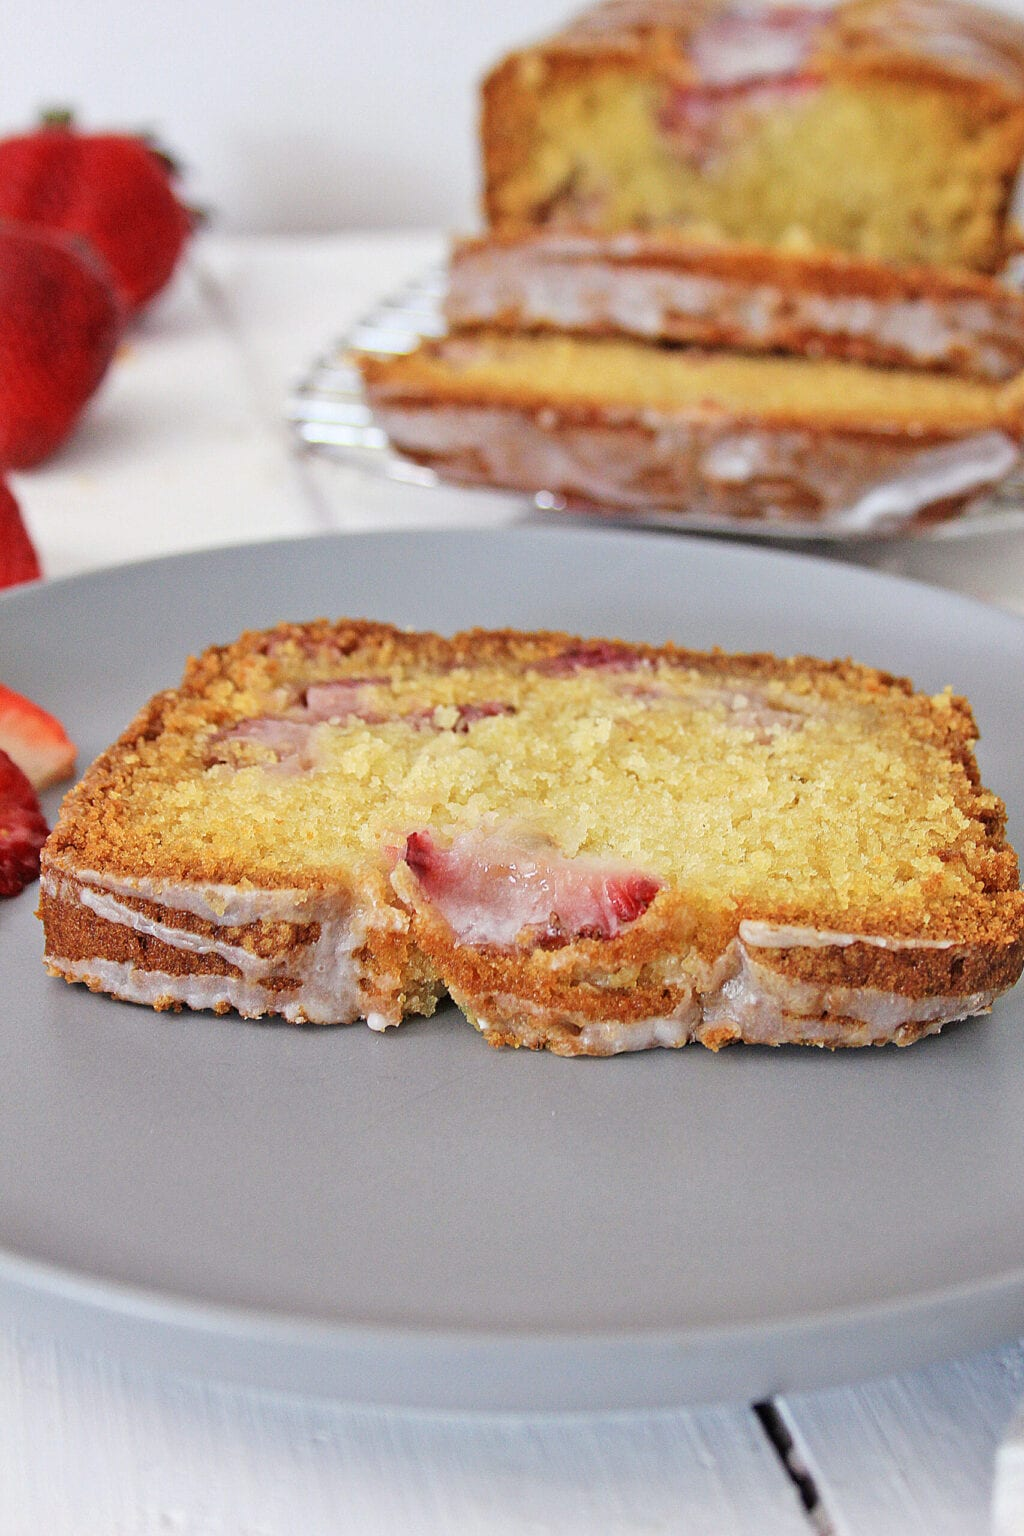 slice of strawberry bread on gray plate in front of sliced loaf of strawberry bread and strawberries on white wooden table